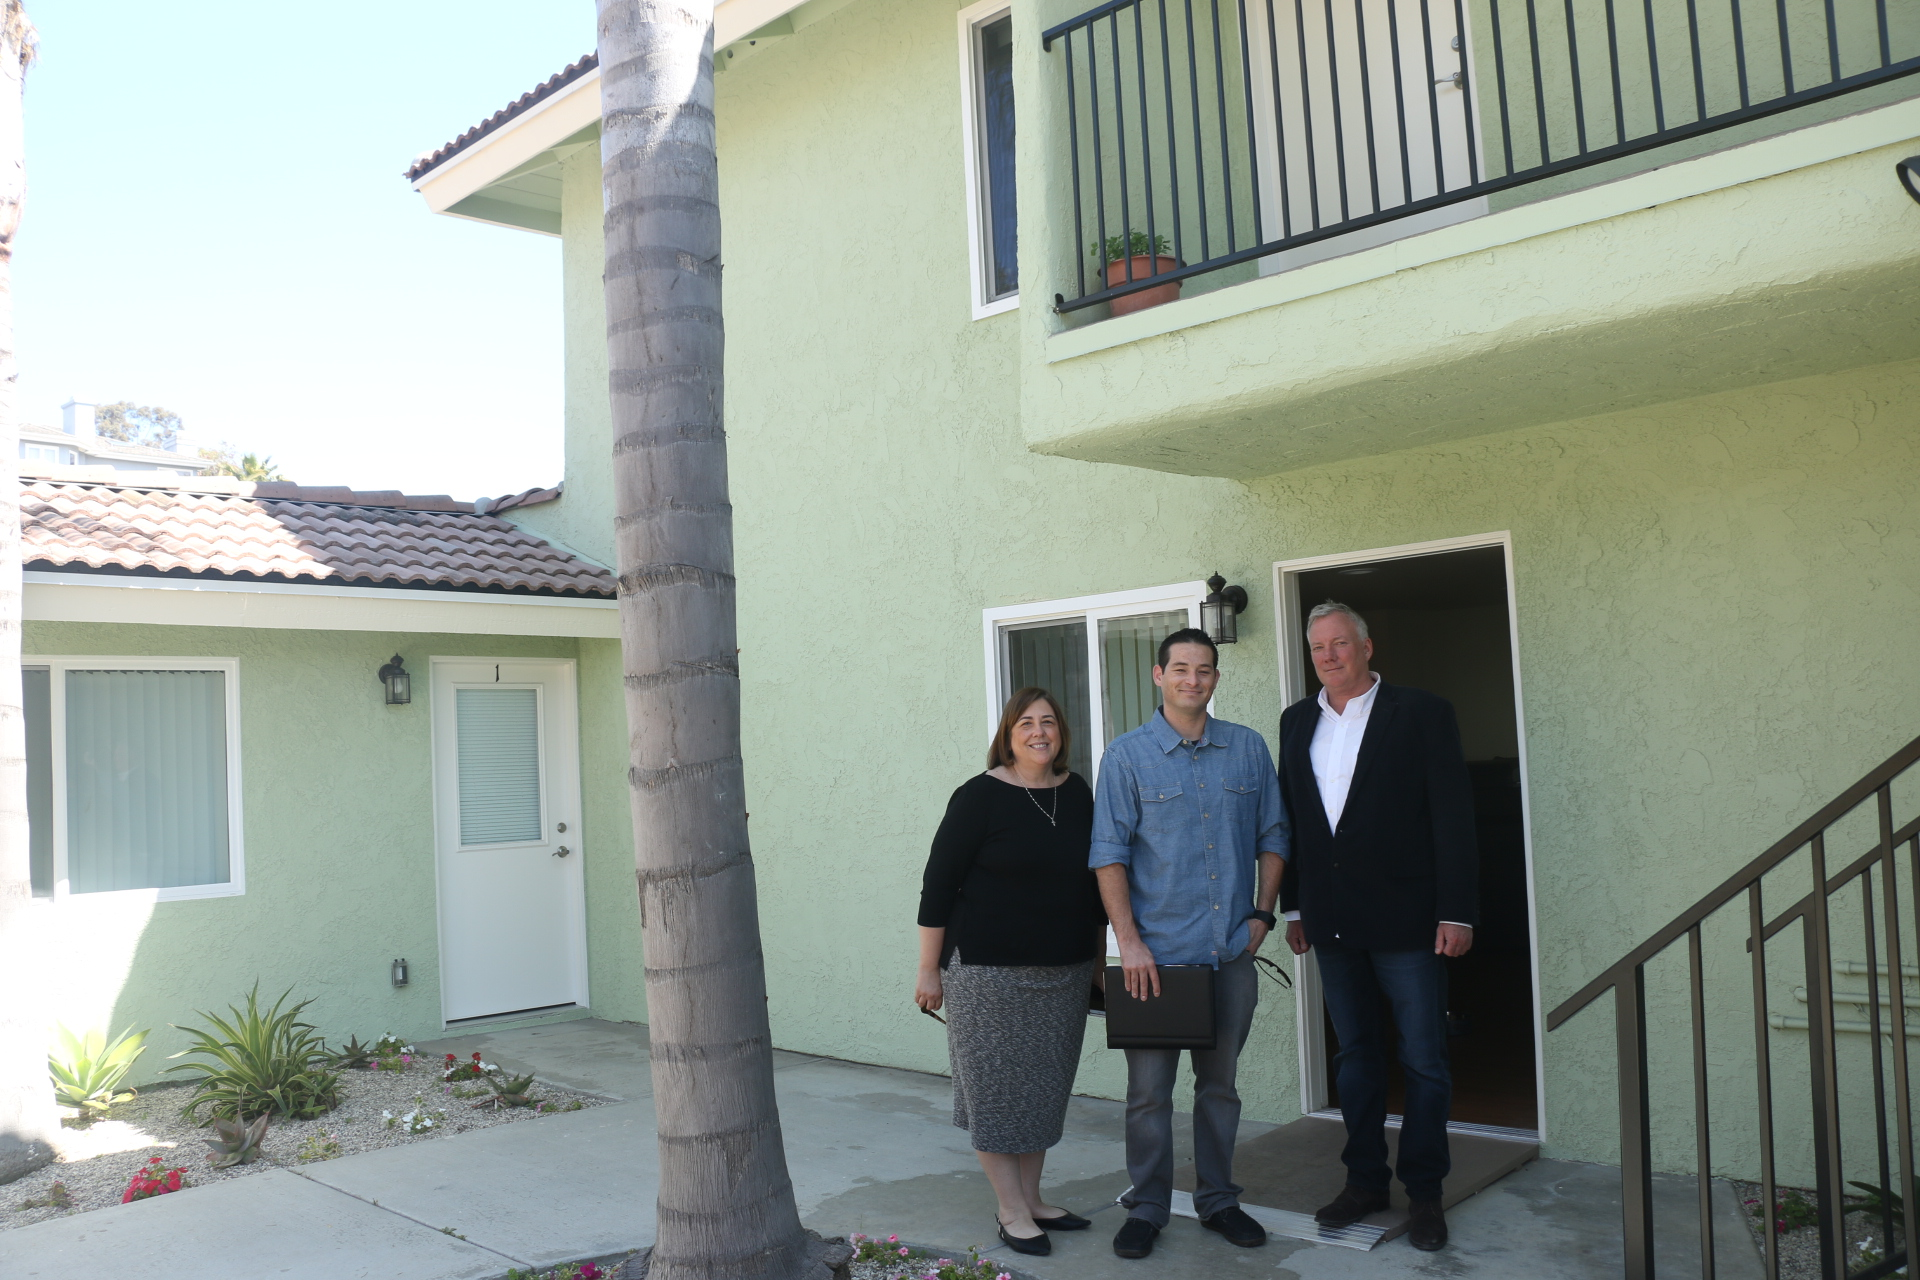 Friendship Shelter representatives (L to R) Dawn Price, David Cox and Mark Miller stand in front of the Henderson House apartments. Photo: Eric Heinz